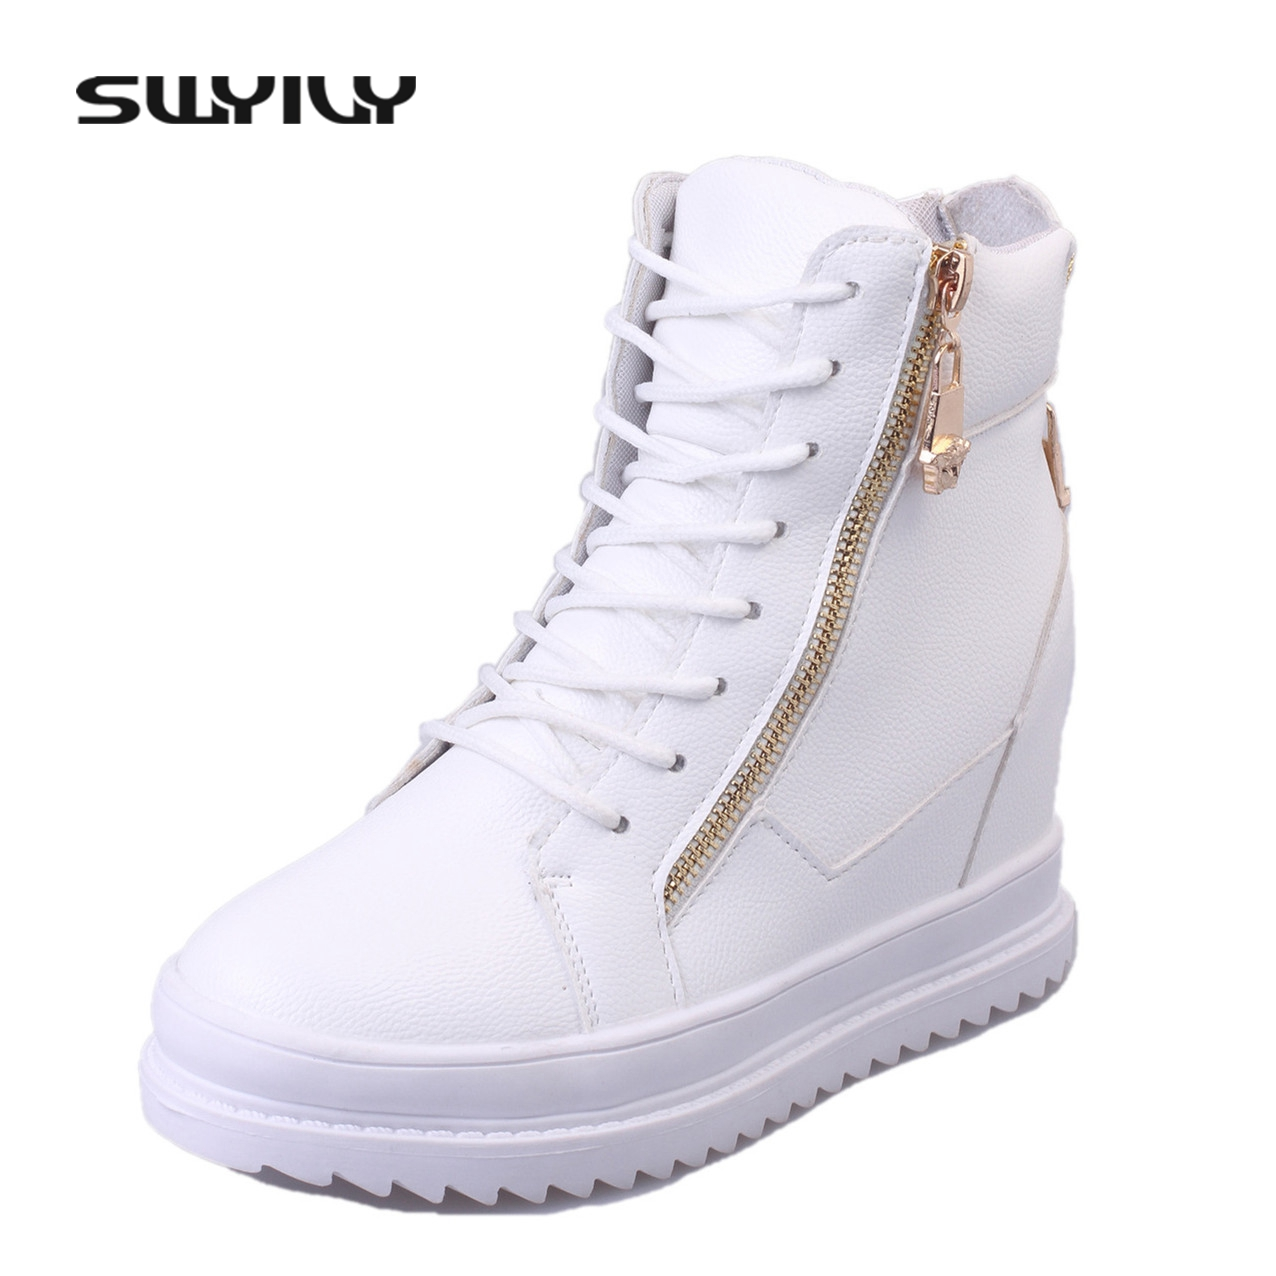 SWYIVY Women Sneaker White High Top Canvas Shoes Wedge Platform Sneakers Women Casual Shoes 2018 ...